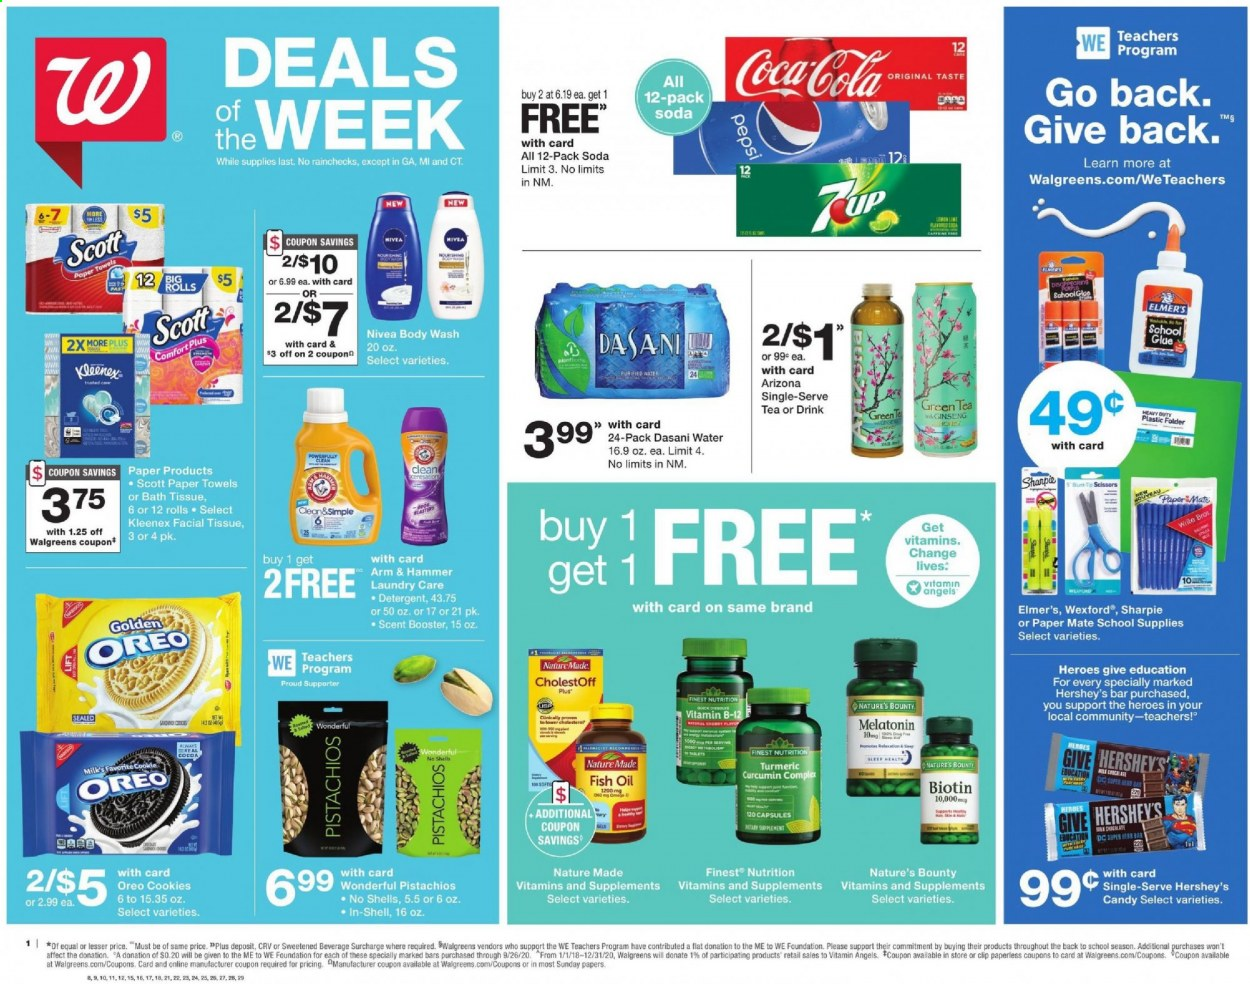 Walgreens Flyer - 08.16.2020 - 08.22.2020 - Sales products - Scott, rolls, milk, Oreo, Hershey's, cookies, candy, Bounty, ARM & HAMMER, cocoa, pistachios, Coca-Cola, Pepsi, soda, AriZona, purified water, green tea, tea, Nivea, bath tissue, Kleenex, kitchen towels, paper towels, detergent, body wash, glue, scissors, folder, PaperMate, Sharpie, Biotin, Melatonin, Nature Made, Nature's Bounty, ginseng, water. Page 1.